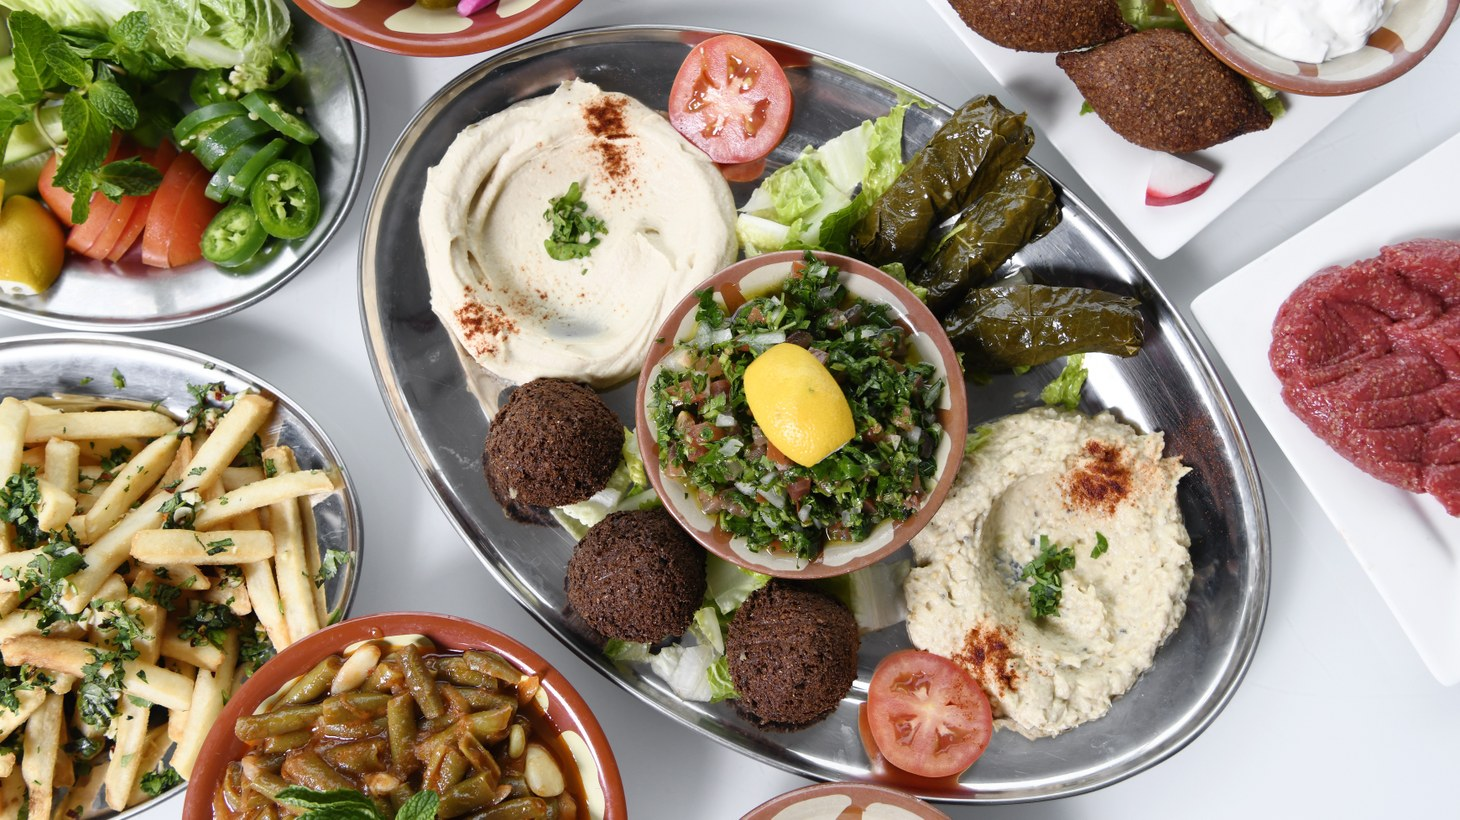 A feast at Hayat's Kitchen often includes falafel, hummus and beef specialties.